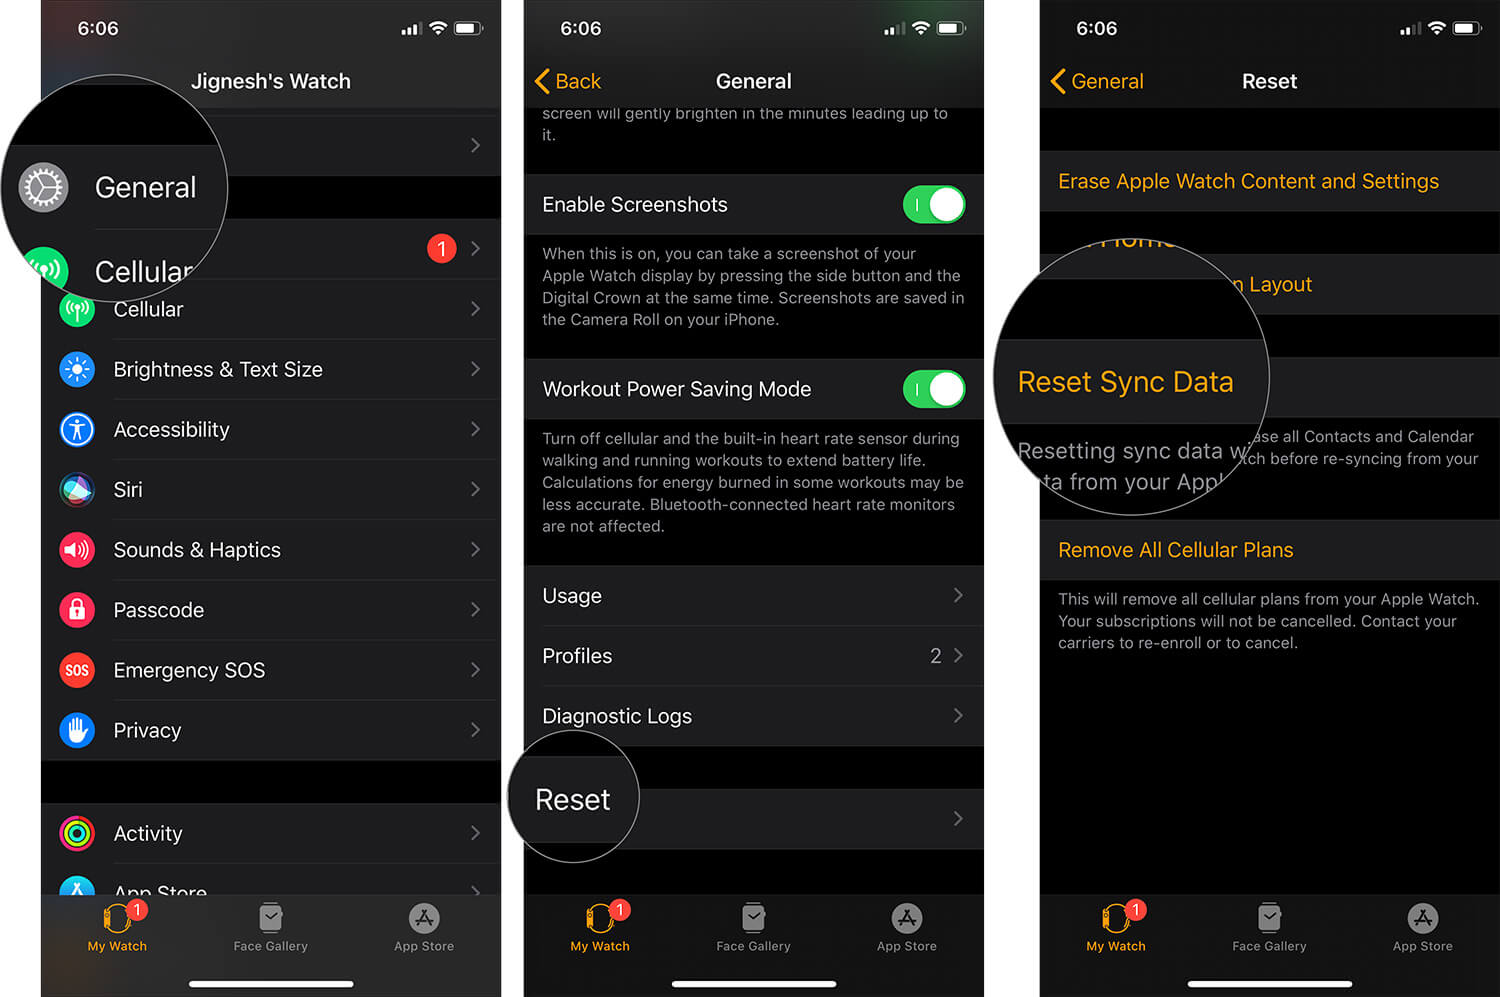 Reset Sync Data in Watch App on iPhone